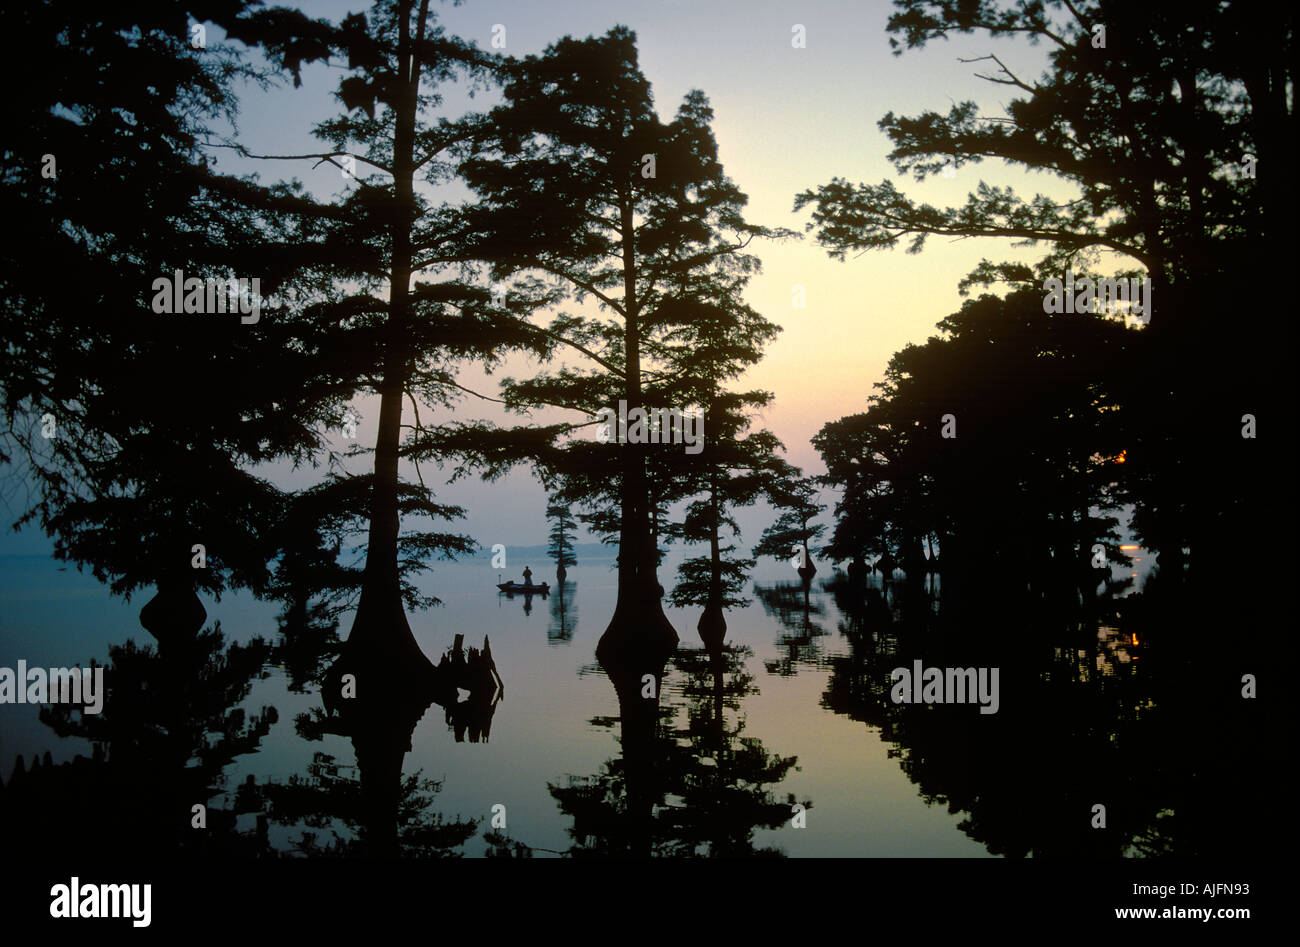 Reelfoot Lake Dawn Tennessee Stock Photo: 4807058 - Alamy